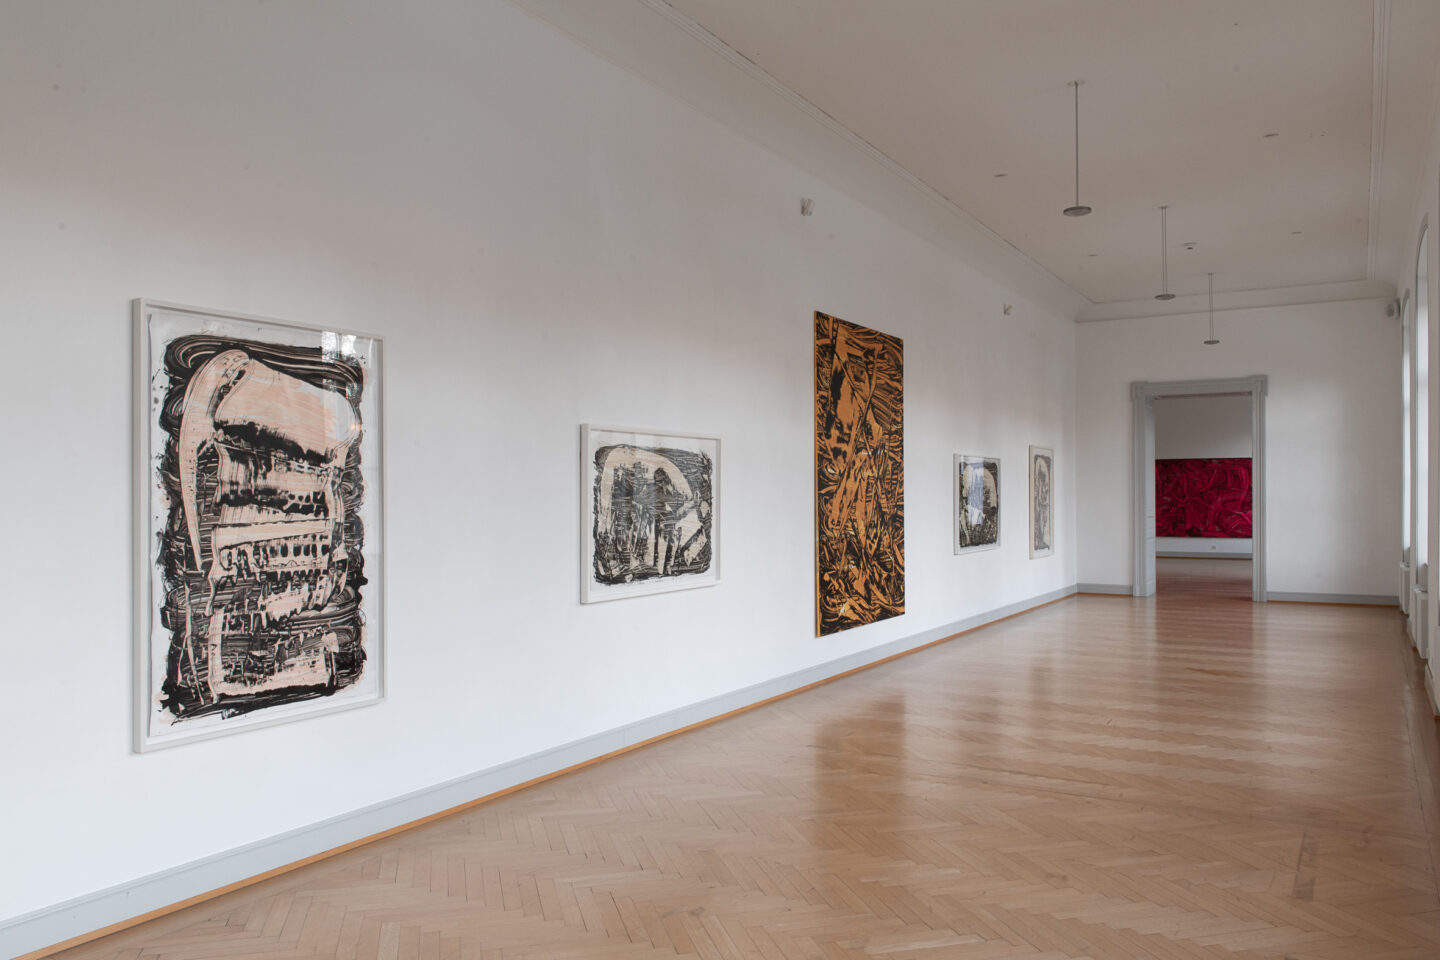 Installation View Judy Millar Soloshow «The Future and the Past Perfect» at Kunstmuseum St. Gallen, 2019 / Photo: Sebastian Stalder